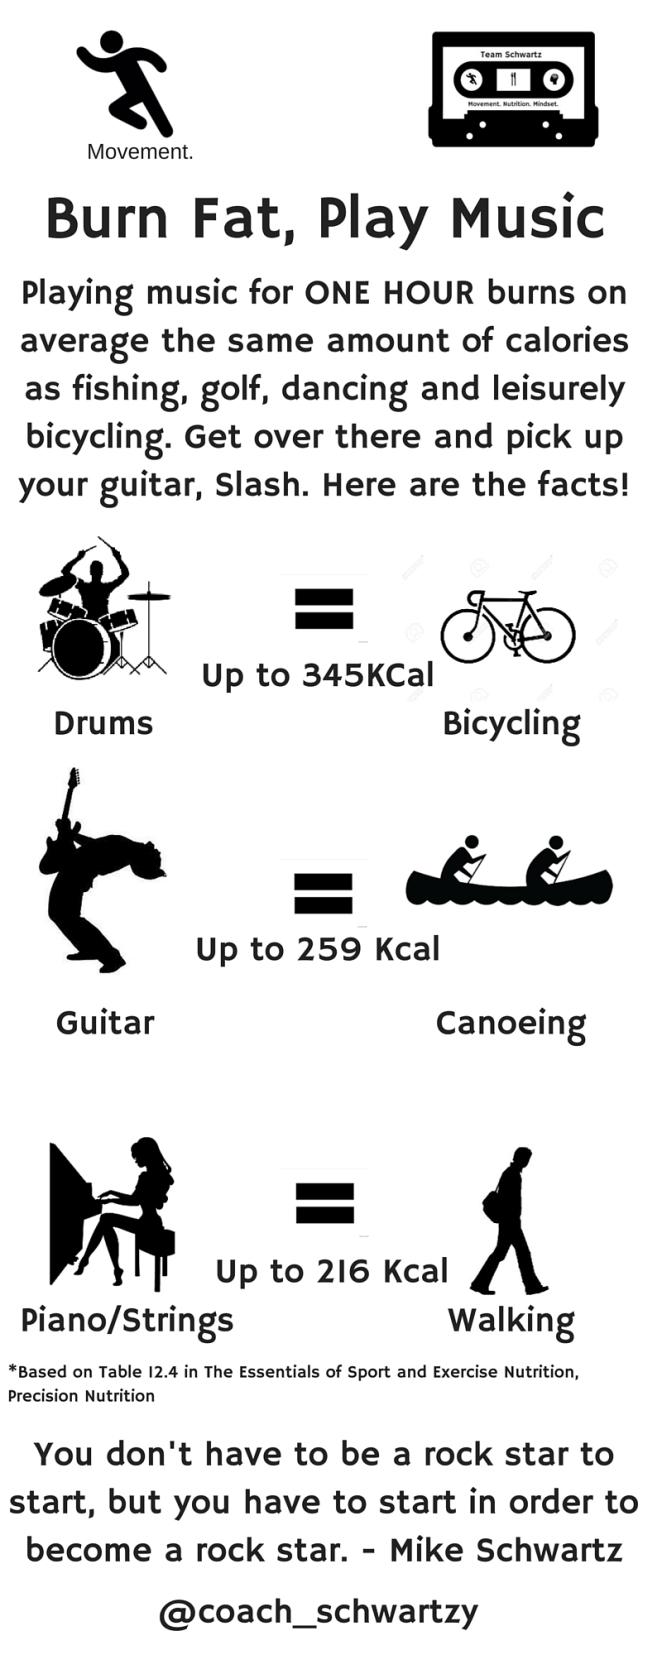 Burn Fat, Play Music